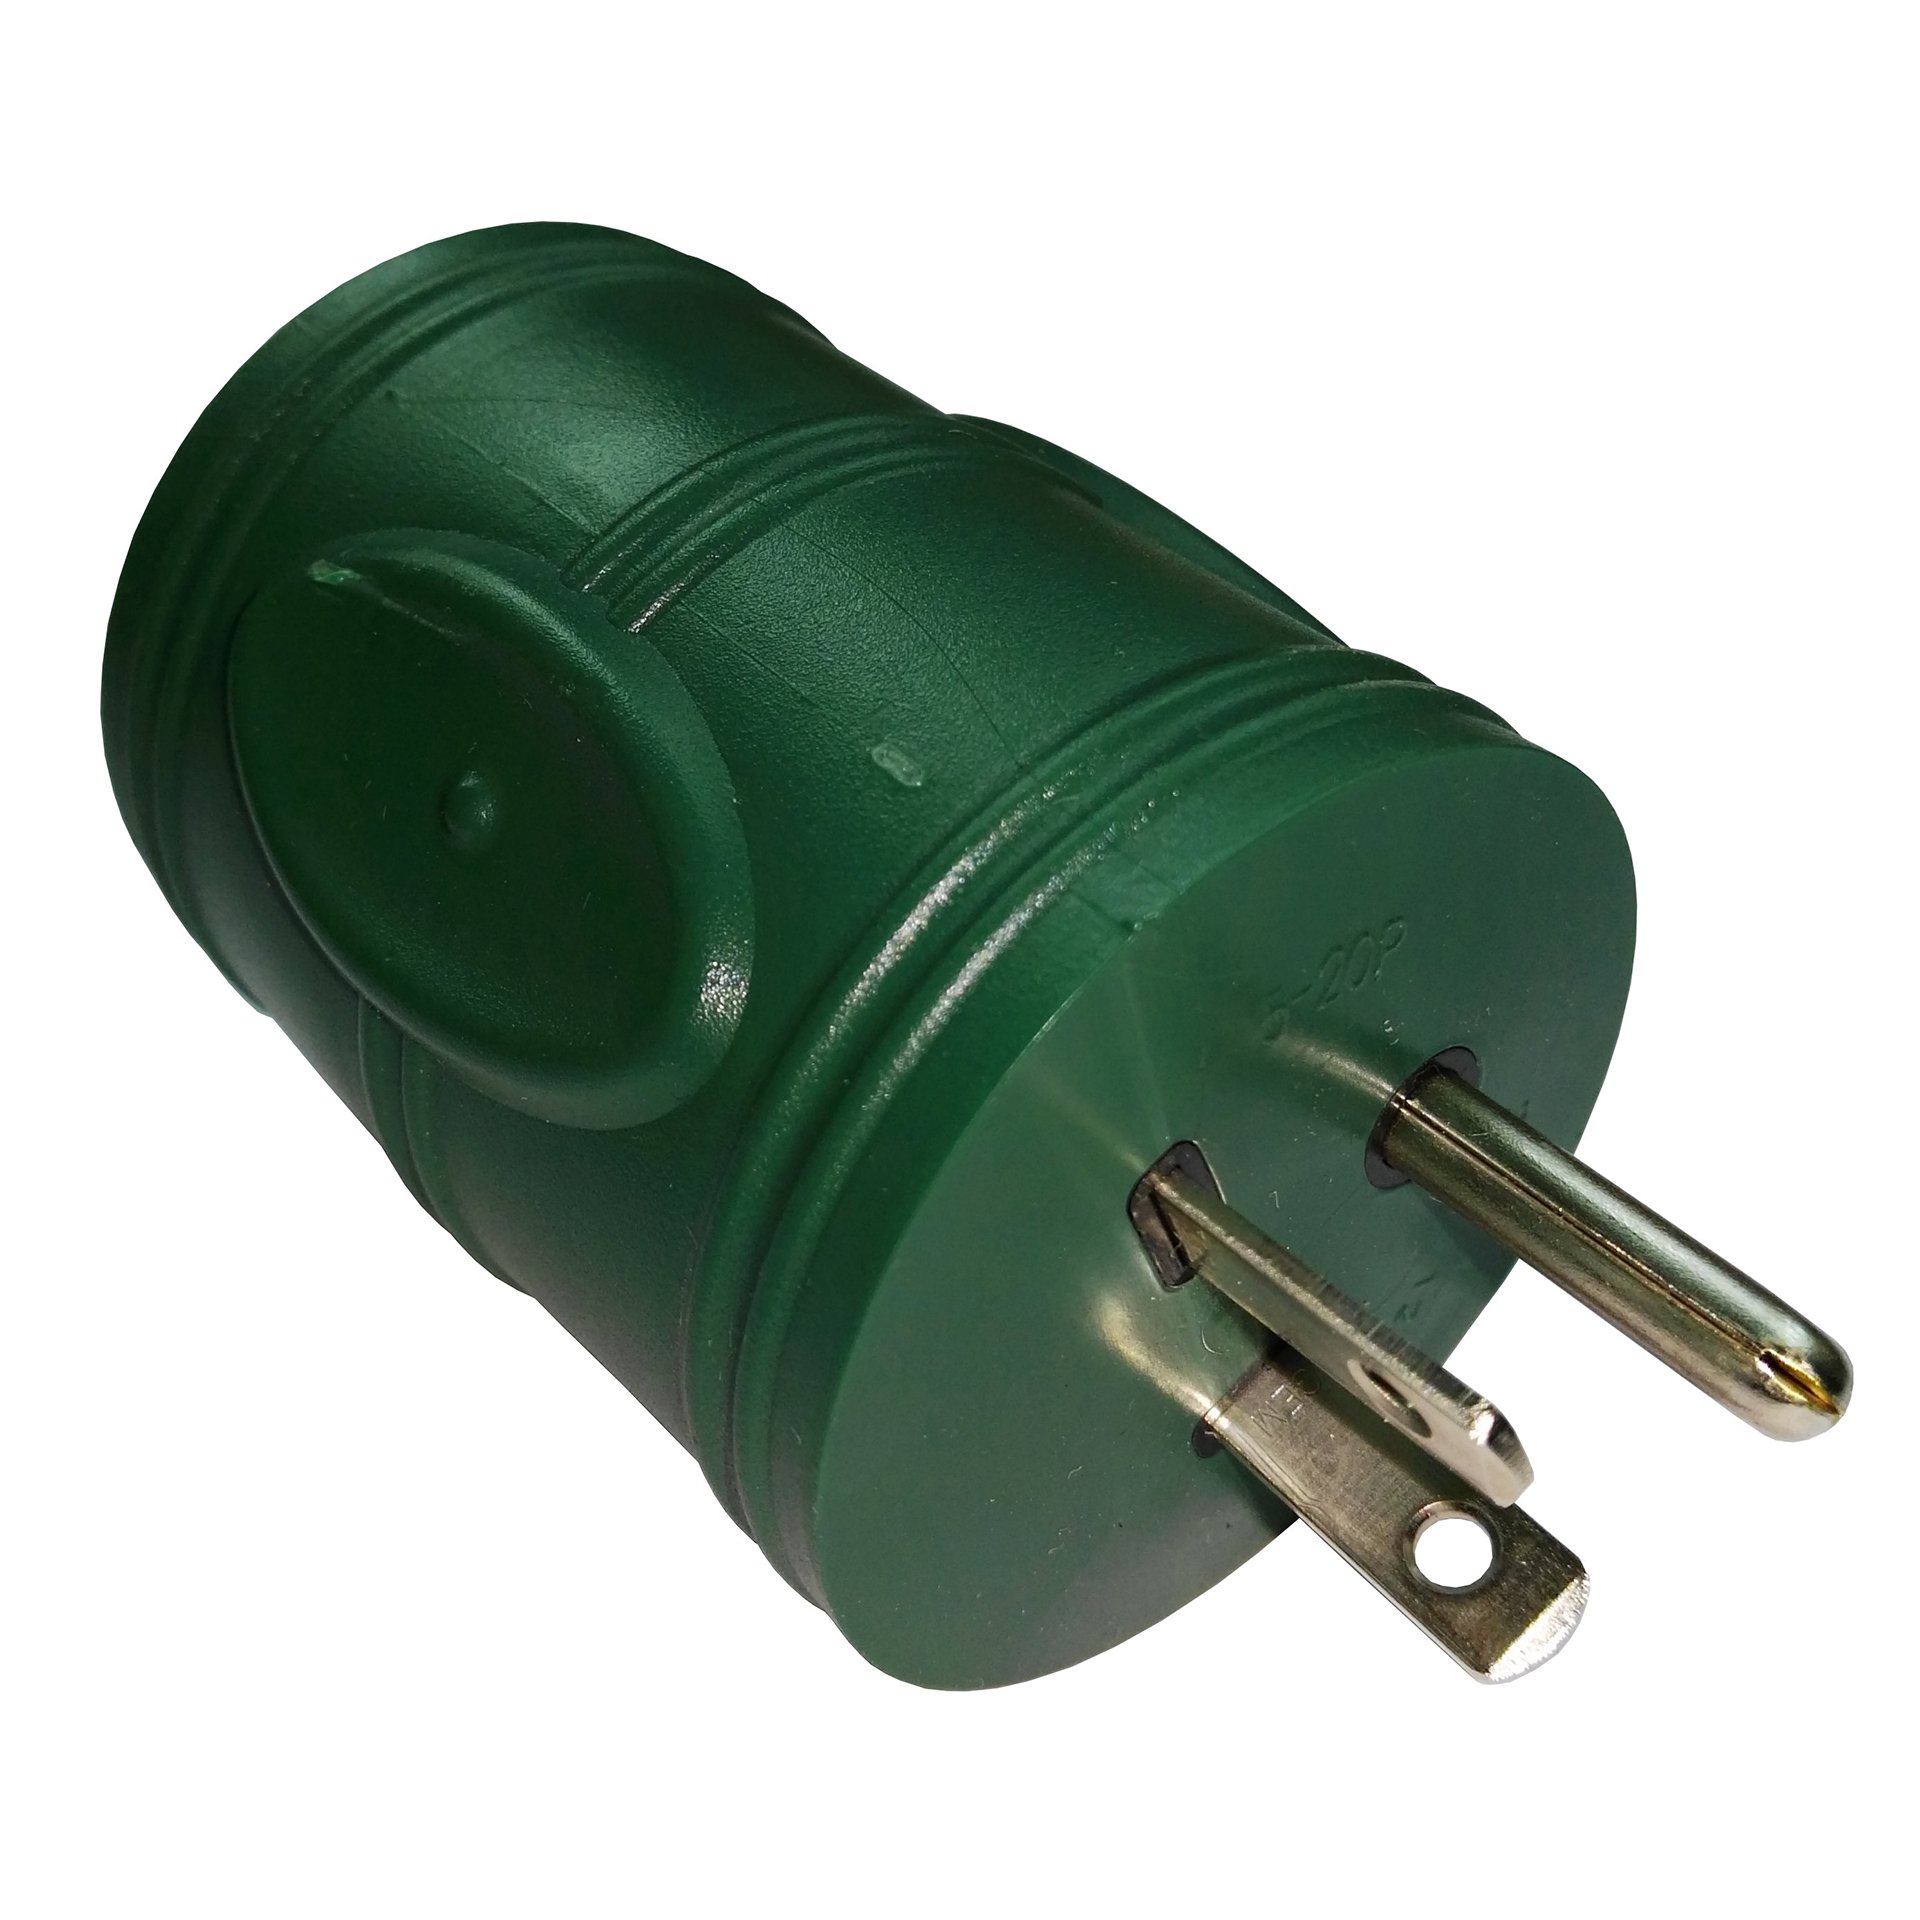 Parkworld 692347 Generator 20 AMP to RV 30A Power Adapter 3-Prong Generator 5-20P Male Plug to RV TT-30R Female Receptacle